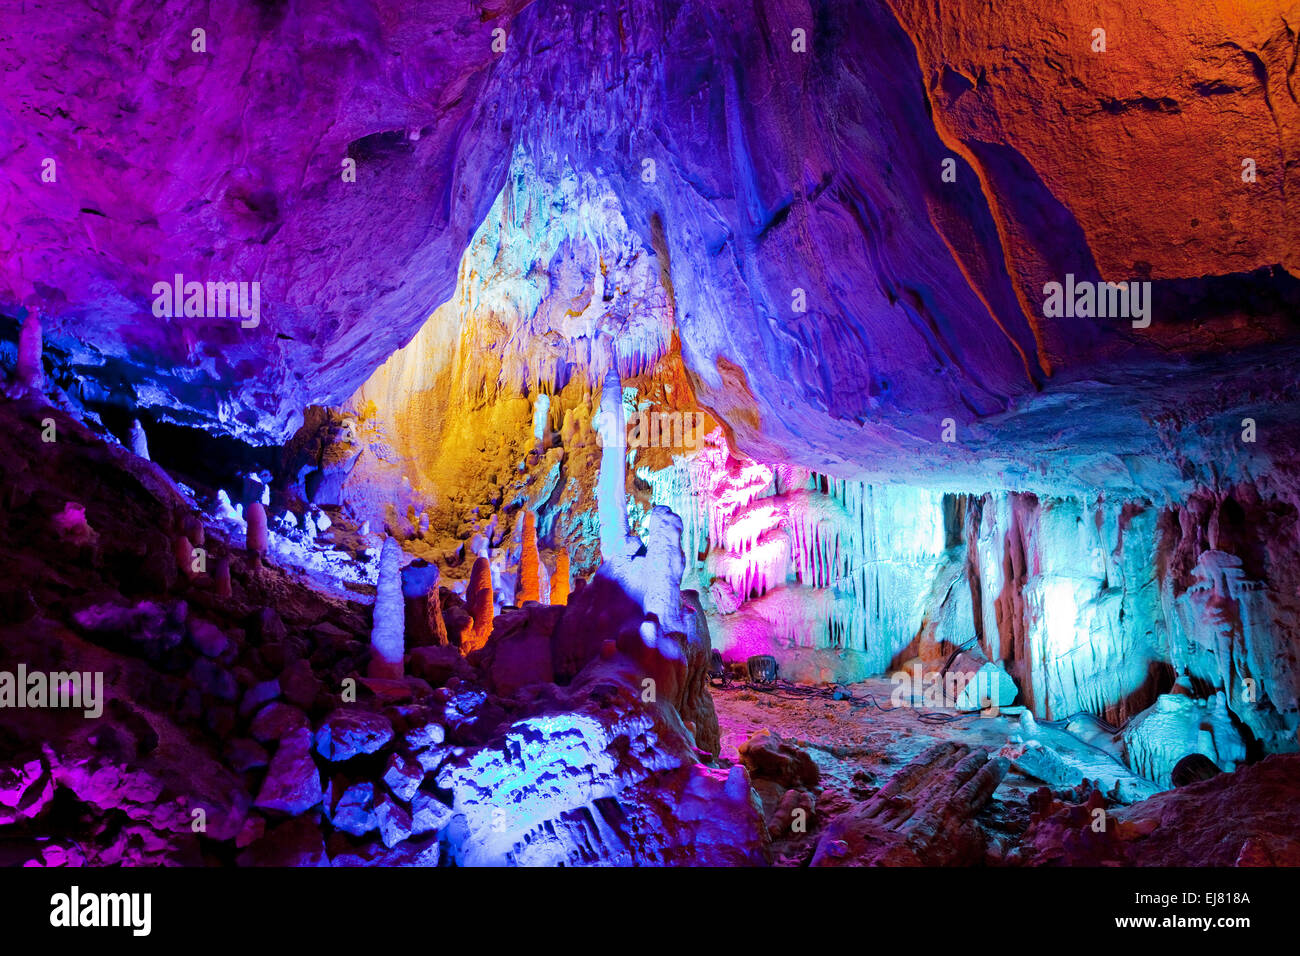 Event cave lights, Iserlohn, Germany - Stock Image